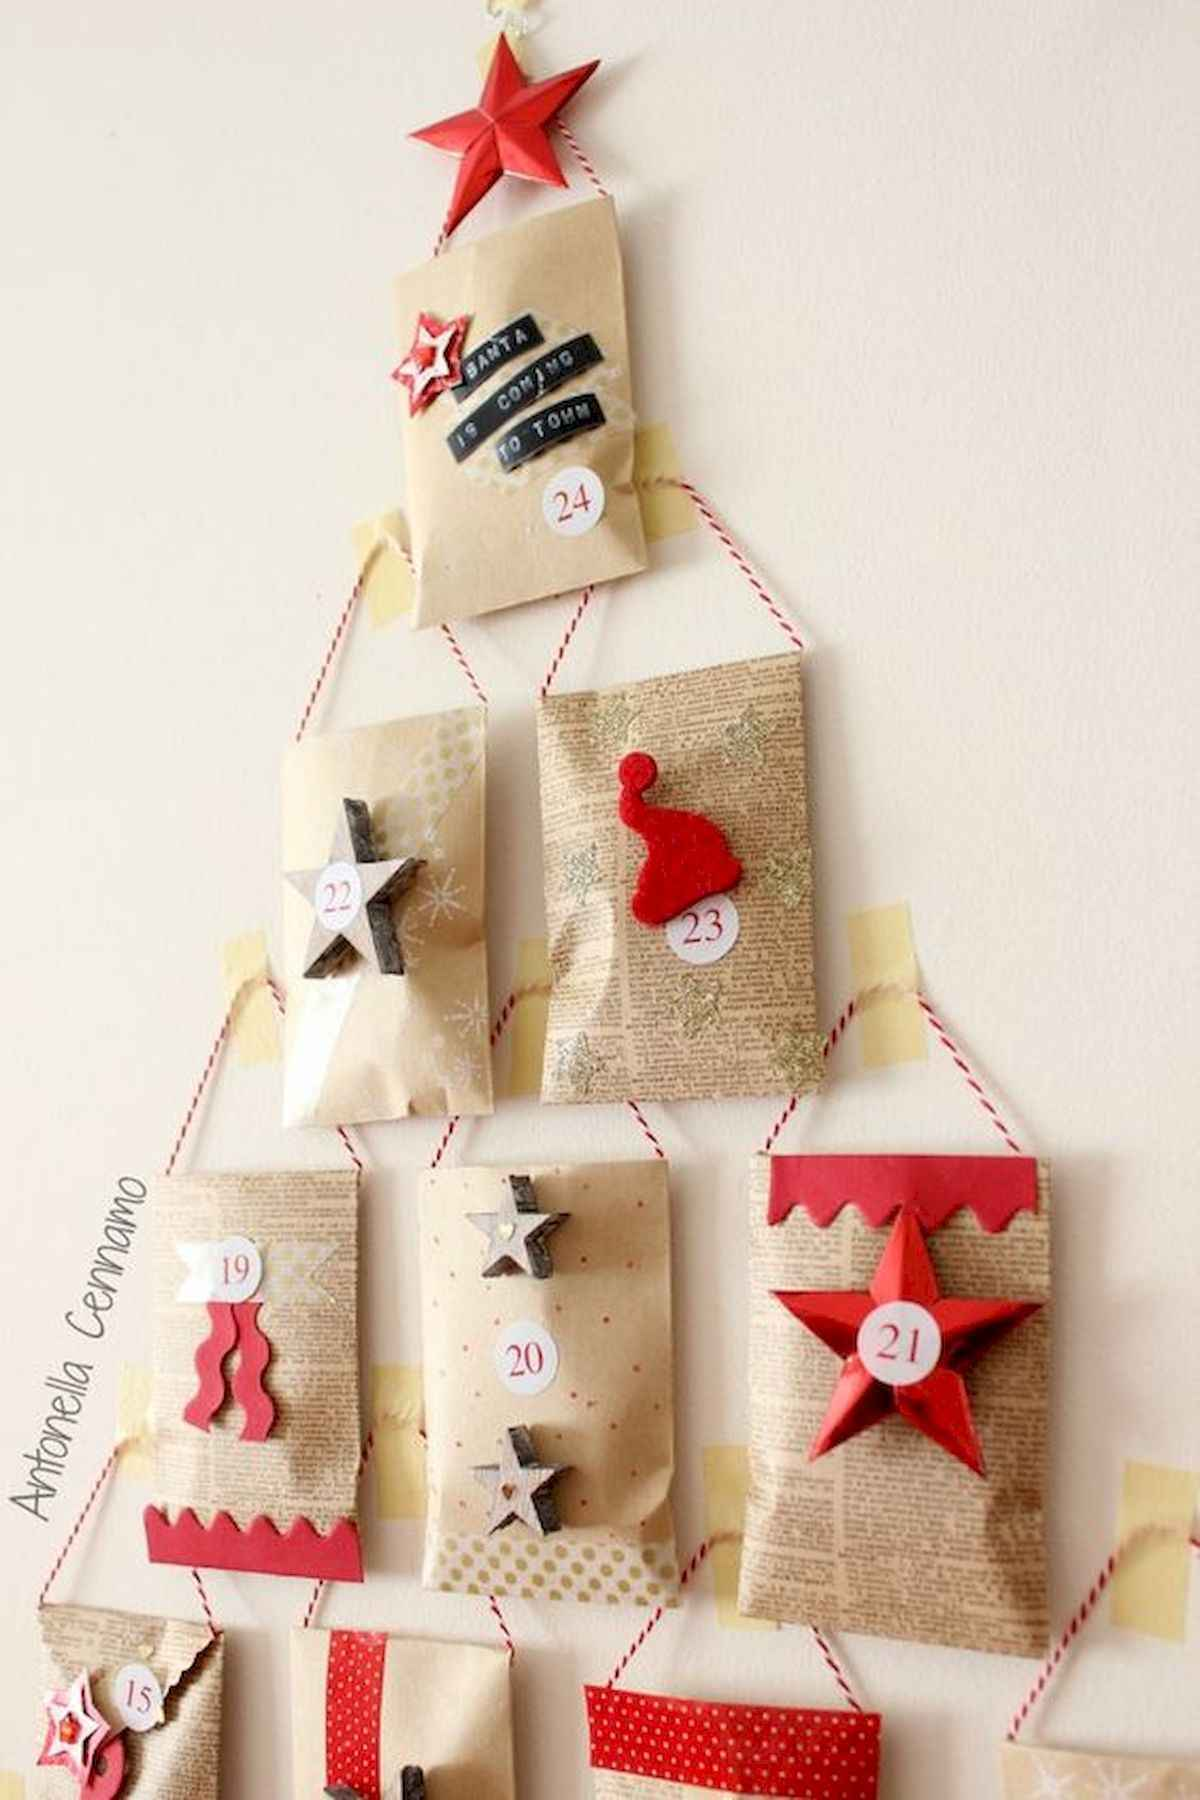 60 awesome wall art christmas ideas decorations (50)